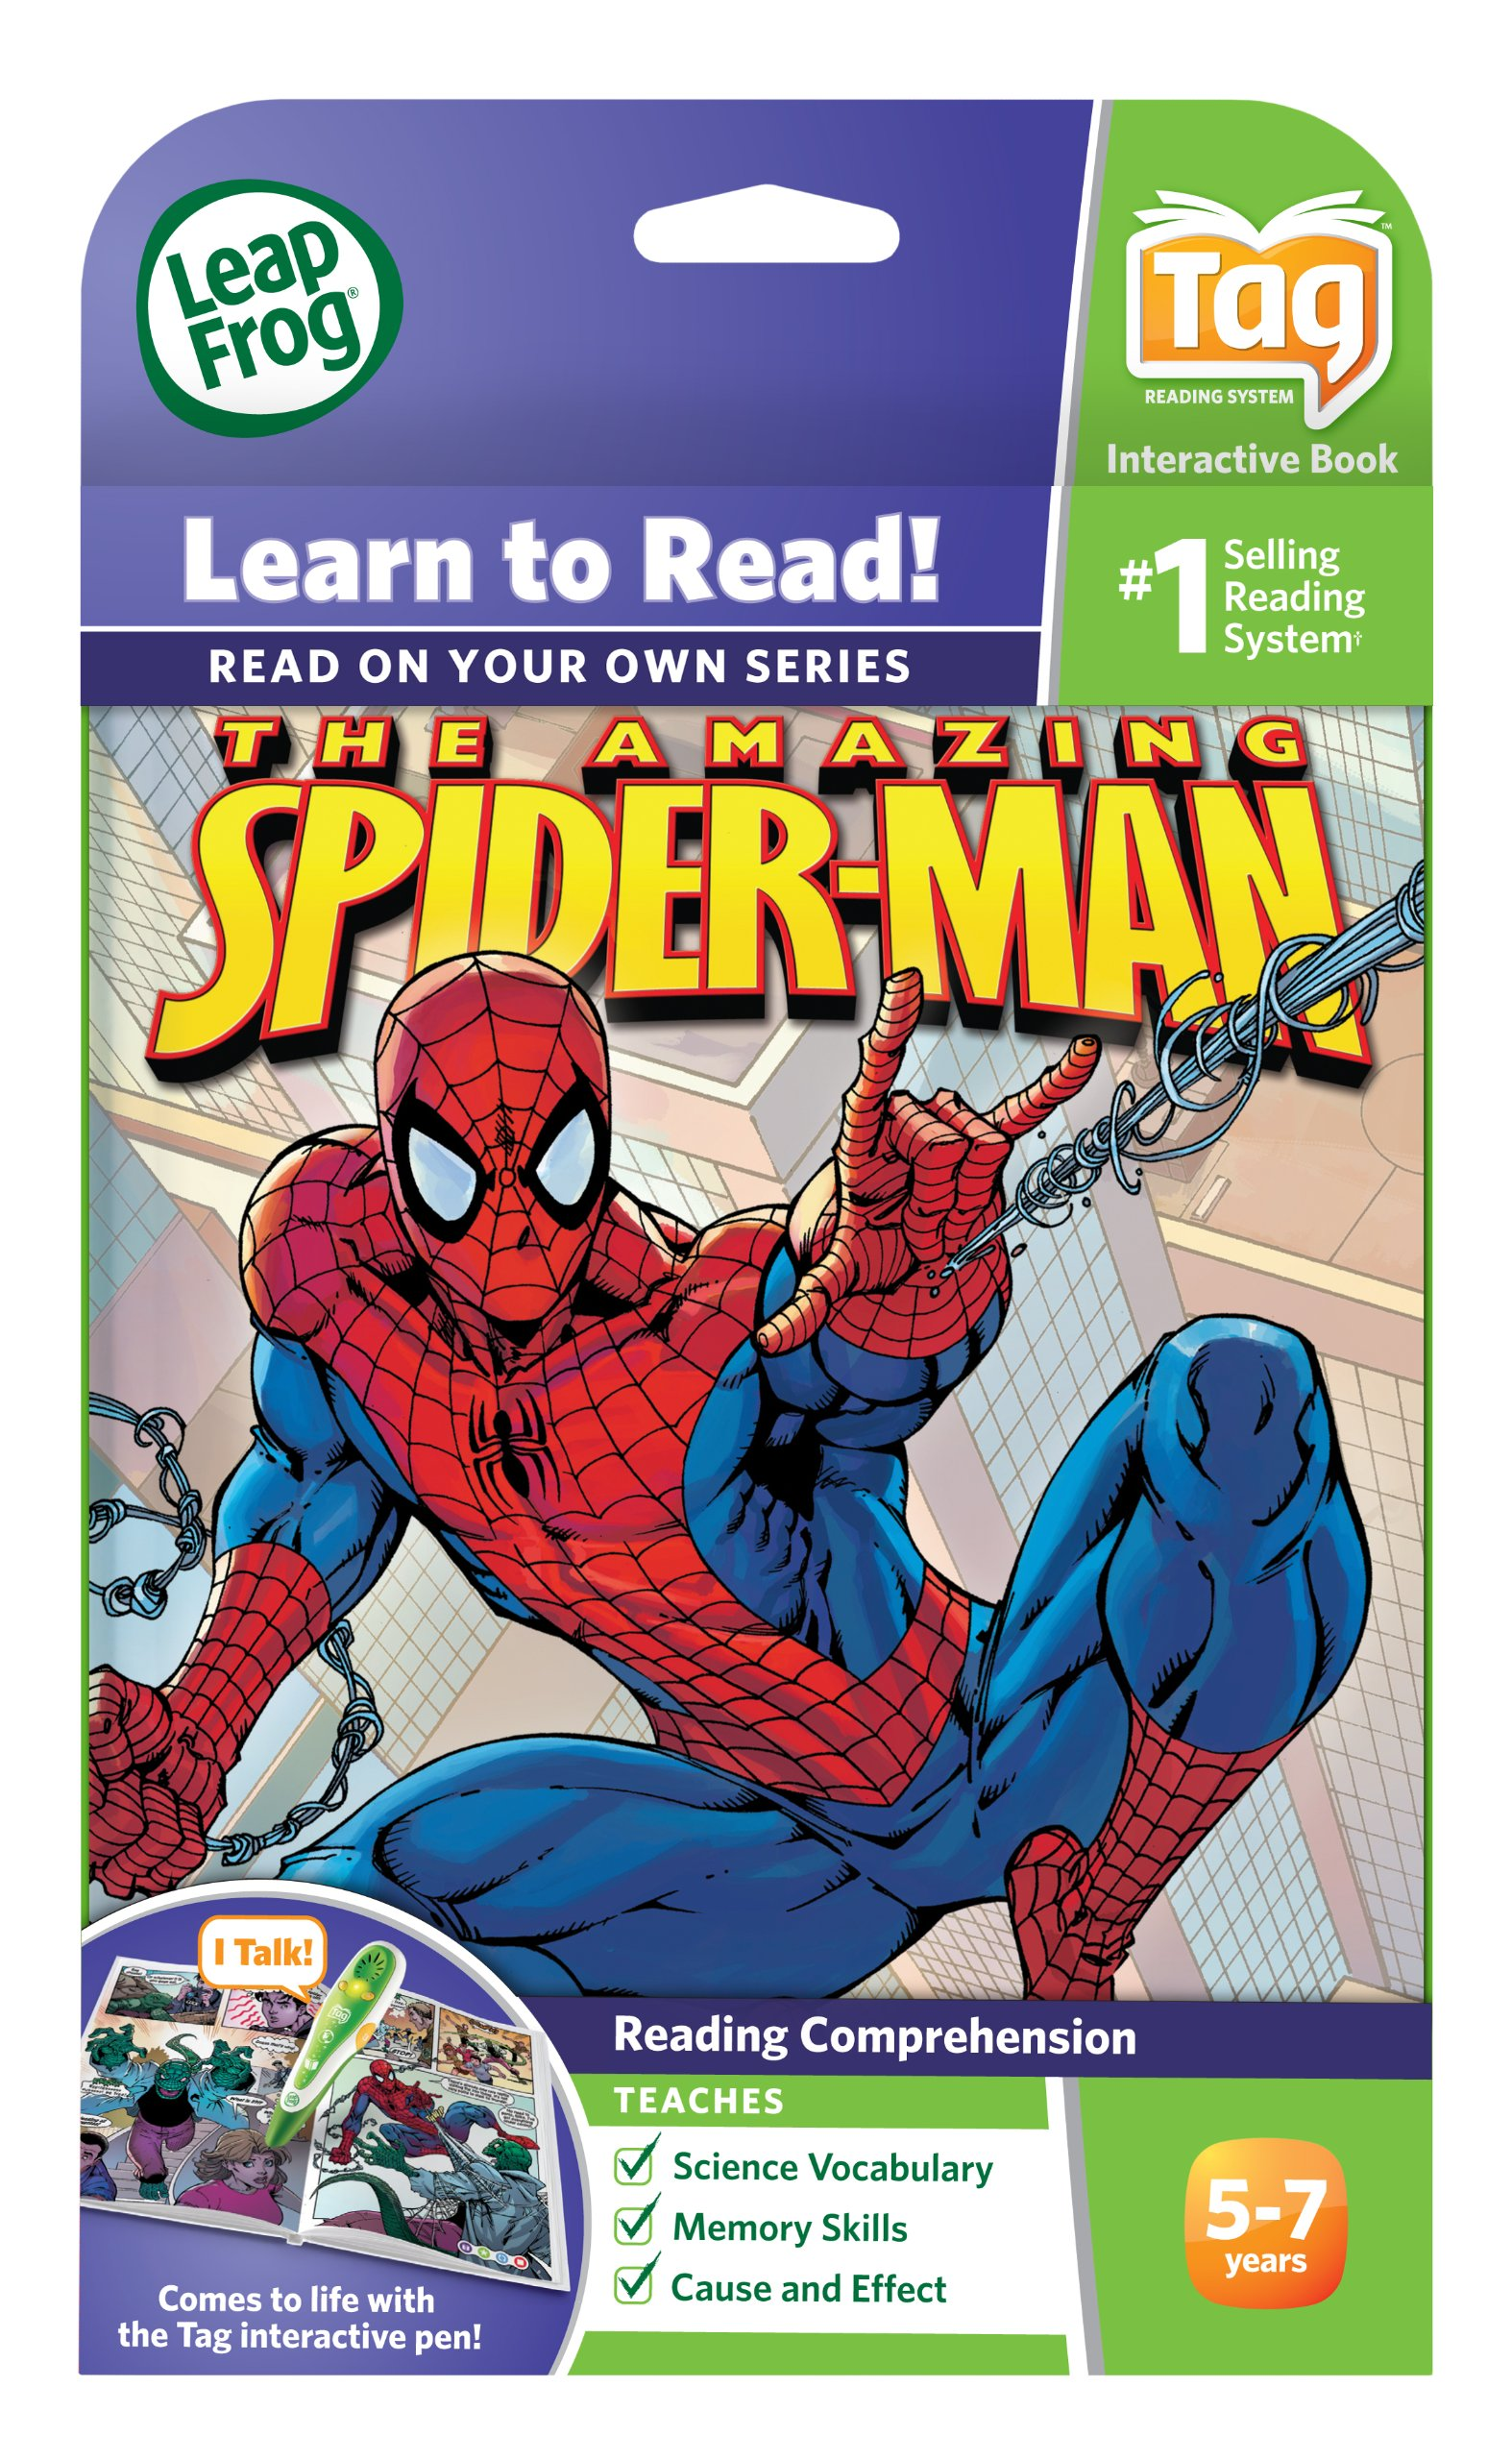 LeapFrog Tag Activity Storybook The Amazing Spider-Man: The Lizard's Tale by LeapFrog (Image #4)